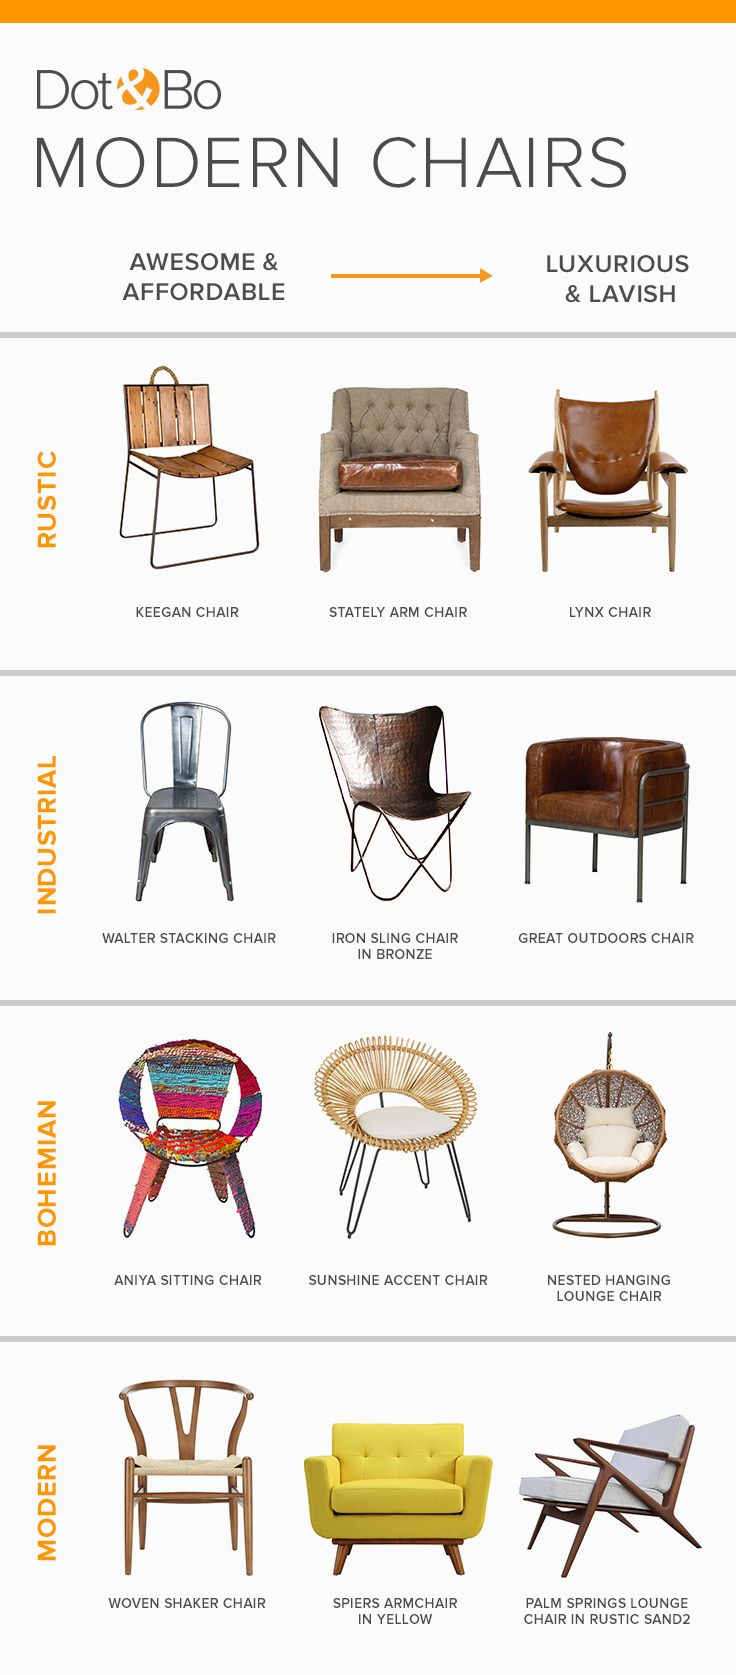 There's always something new to discover. Shop chairs and more at Dot & Bo and explore our hand-picked, curated furniture collections. Sign up and shop now at dotandbo.com!